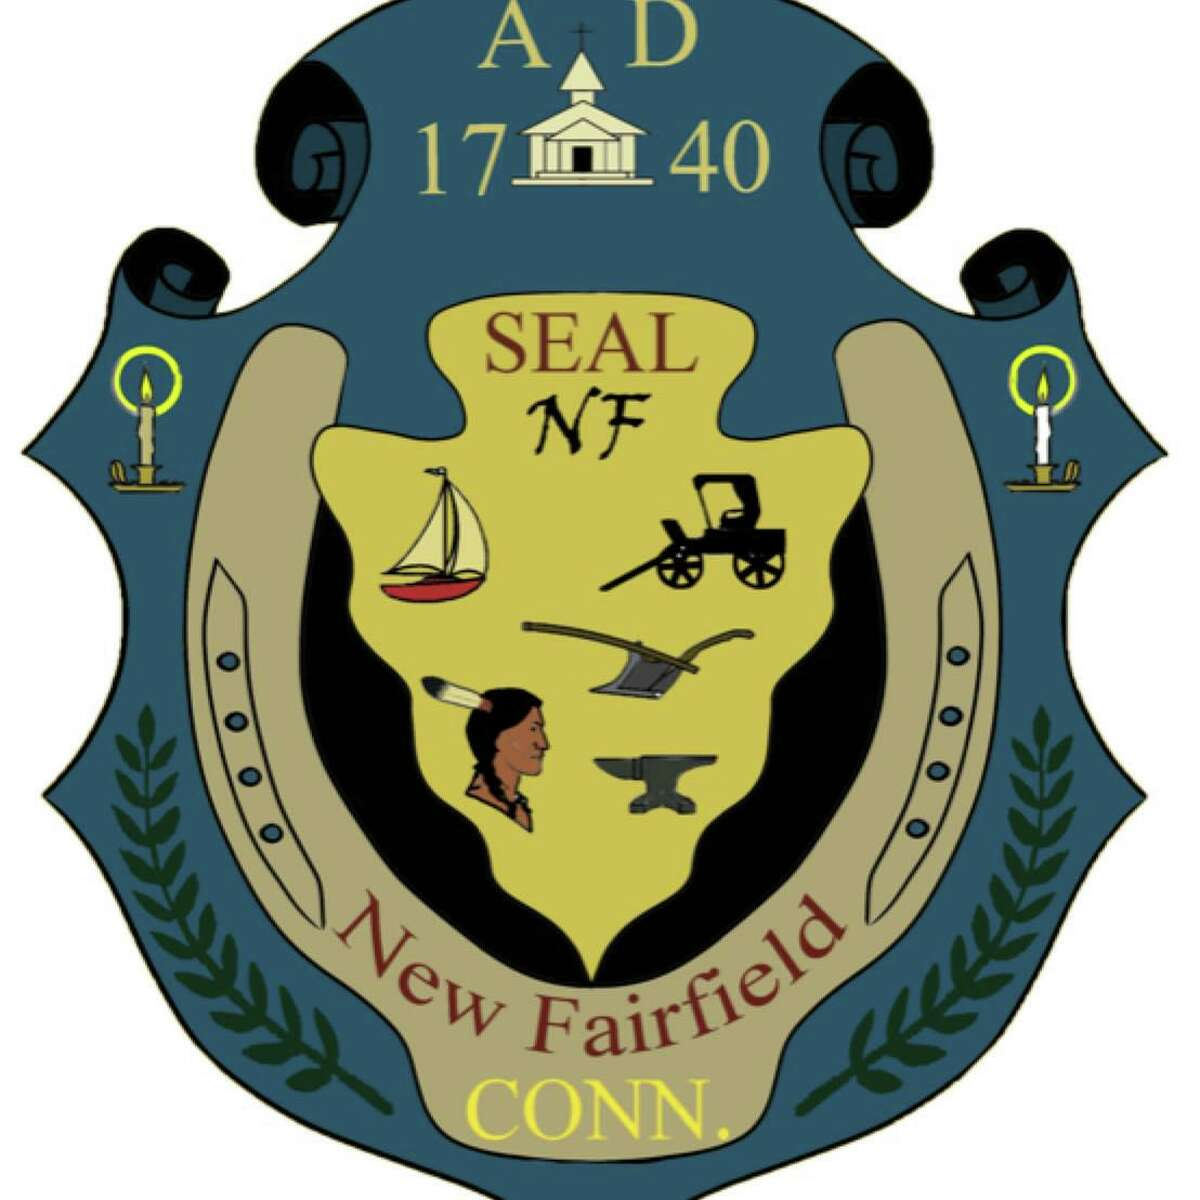 The New Fairfield Economic Development Commission is looking into possibly changing the town seal.